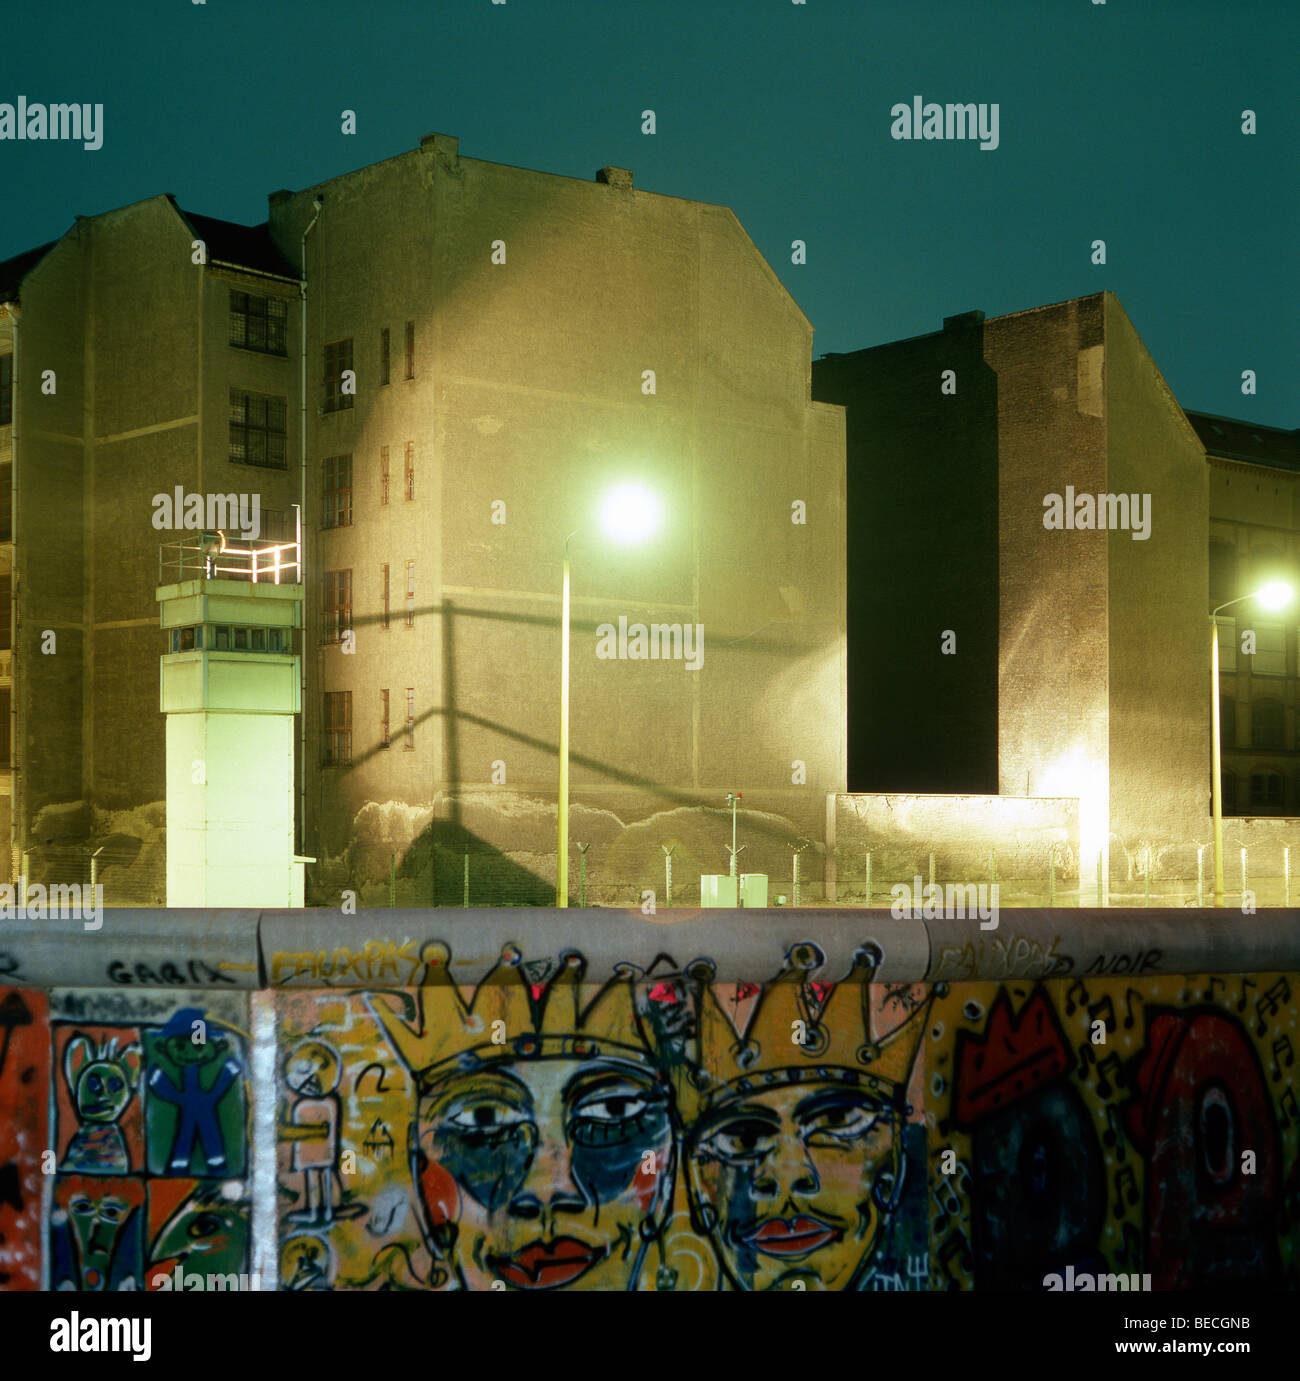 Berlin Wall with graffiti, guard tower and illuminated no man's land in the back, Berlin, Germany - Stock Image